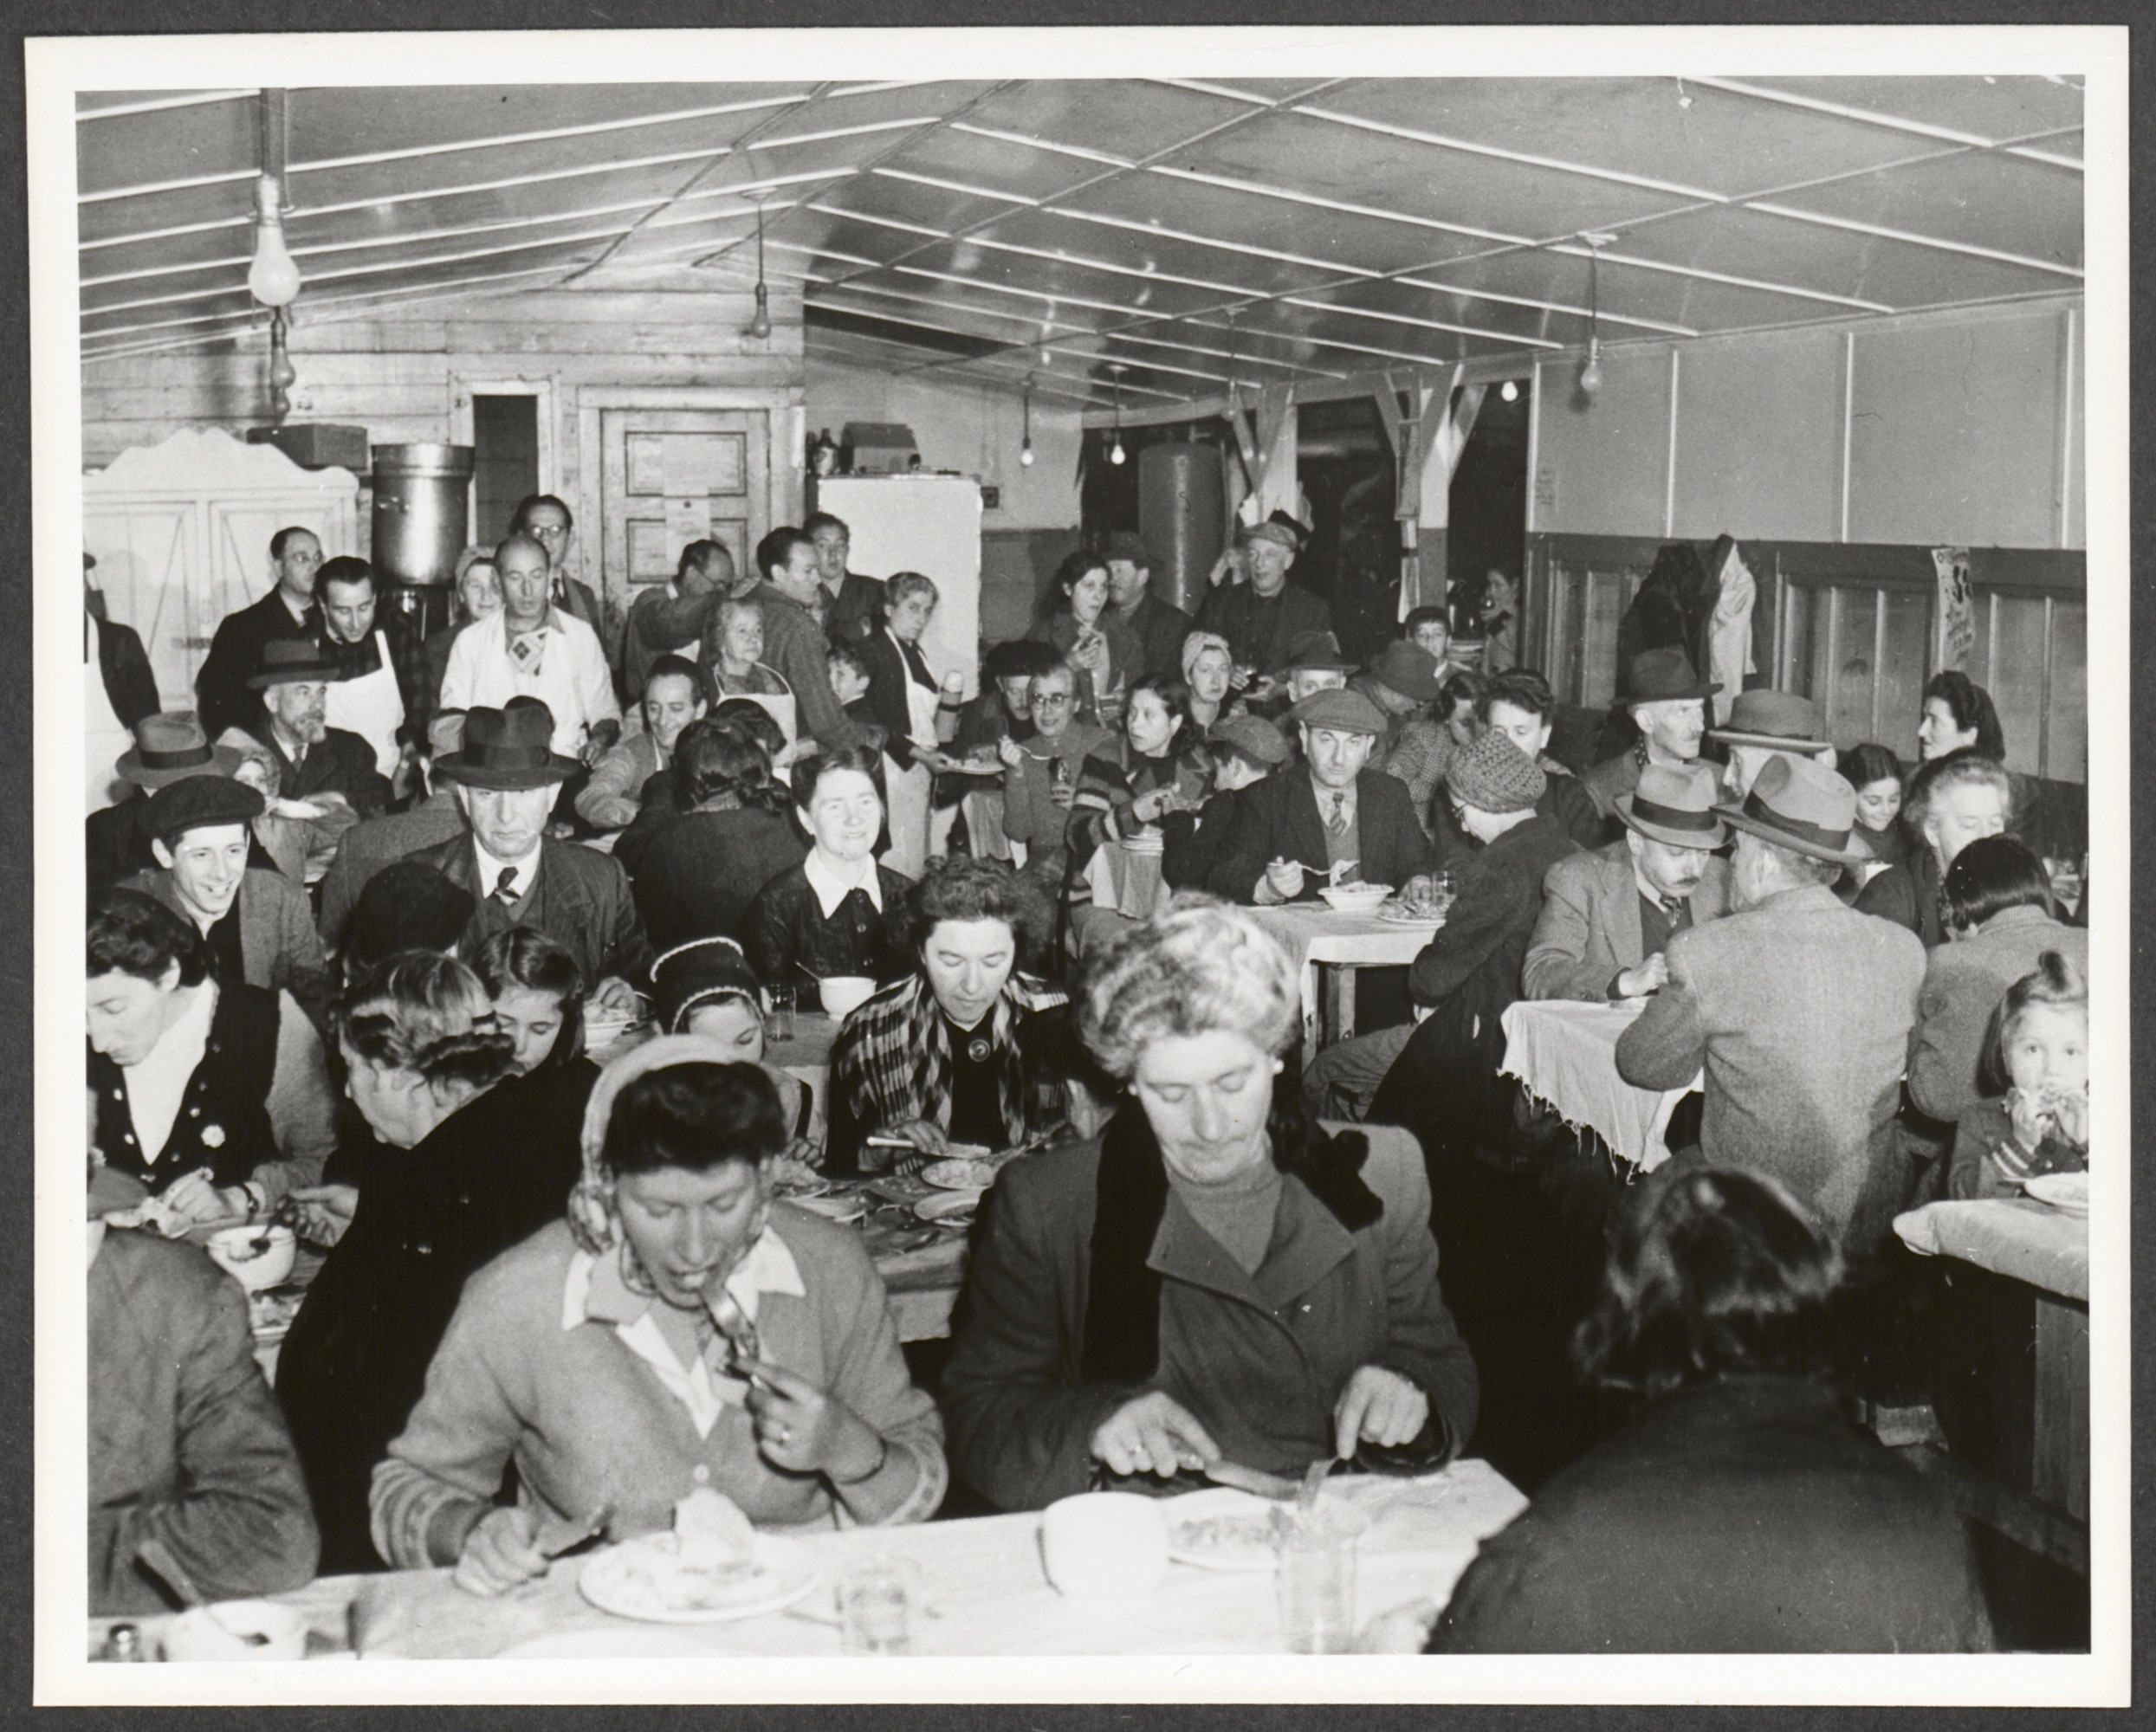 Jewish refugees eat a meal in a dining room at Fort Ontario.   Beila Deutscher is pictured in center of frame.